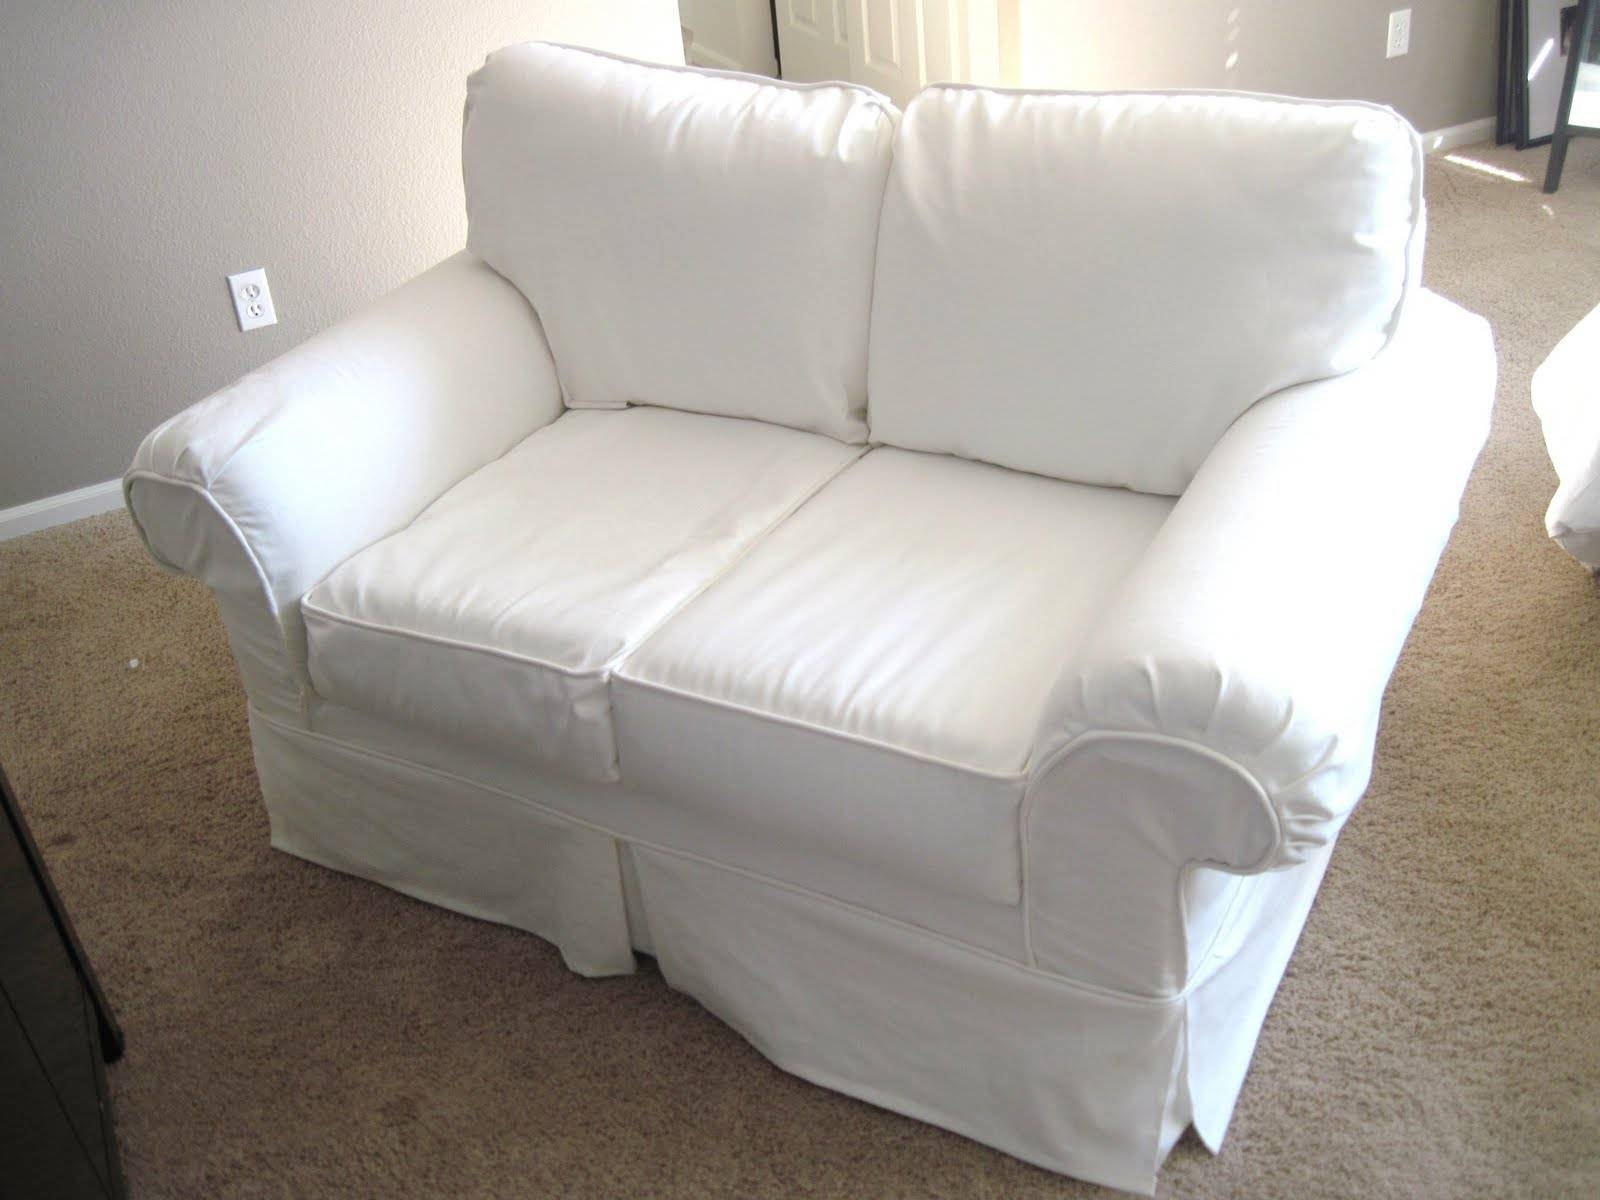 Attractive Couch Slipcovers — Steveb Interior with regard to Canvas Sofa Slipcovers (Image 2 of 15)